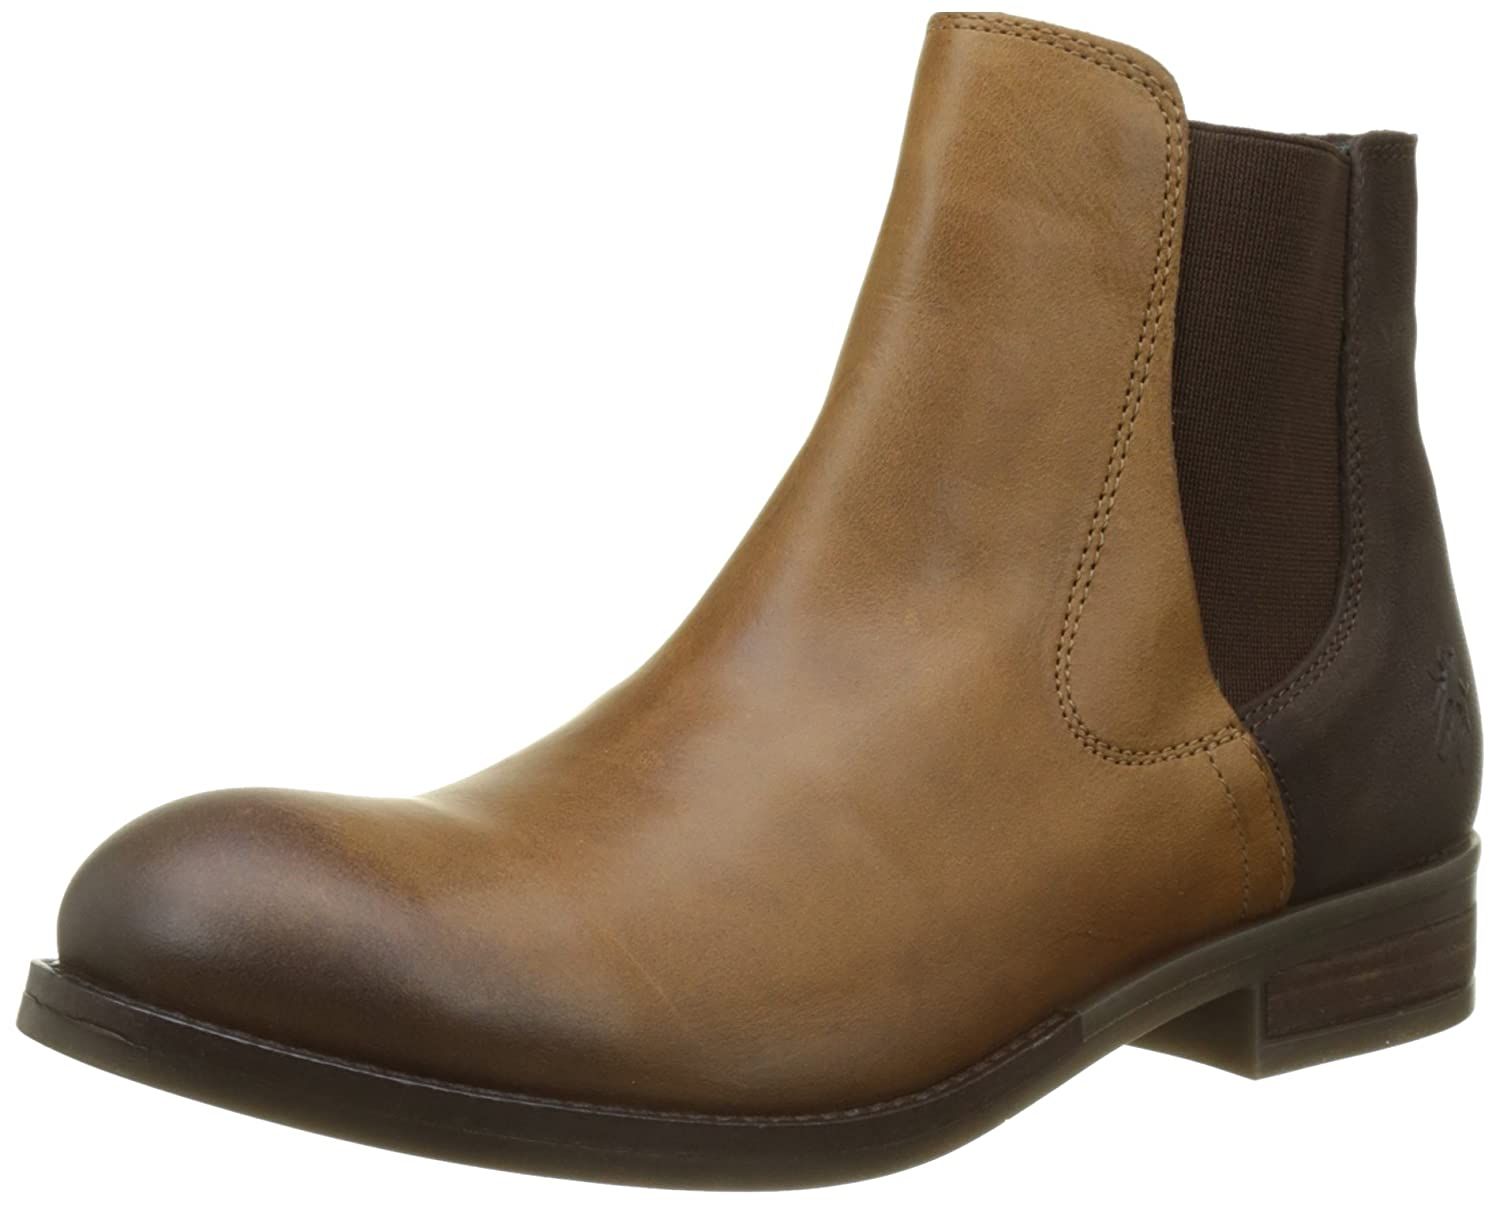 Fly London Alls076fly, Botas Chelsea para Mujer Marrón (Camel/Chocolate)